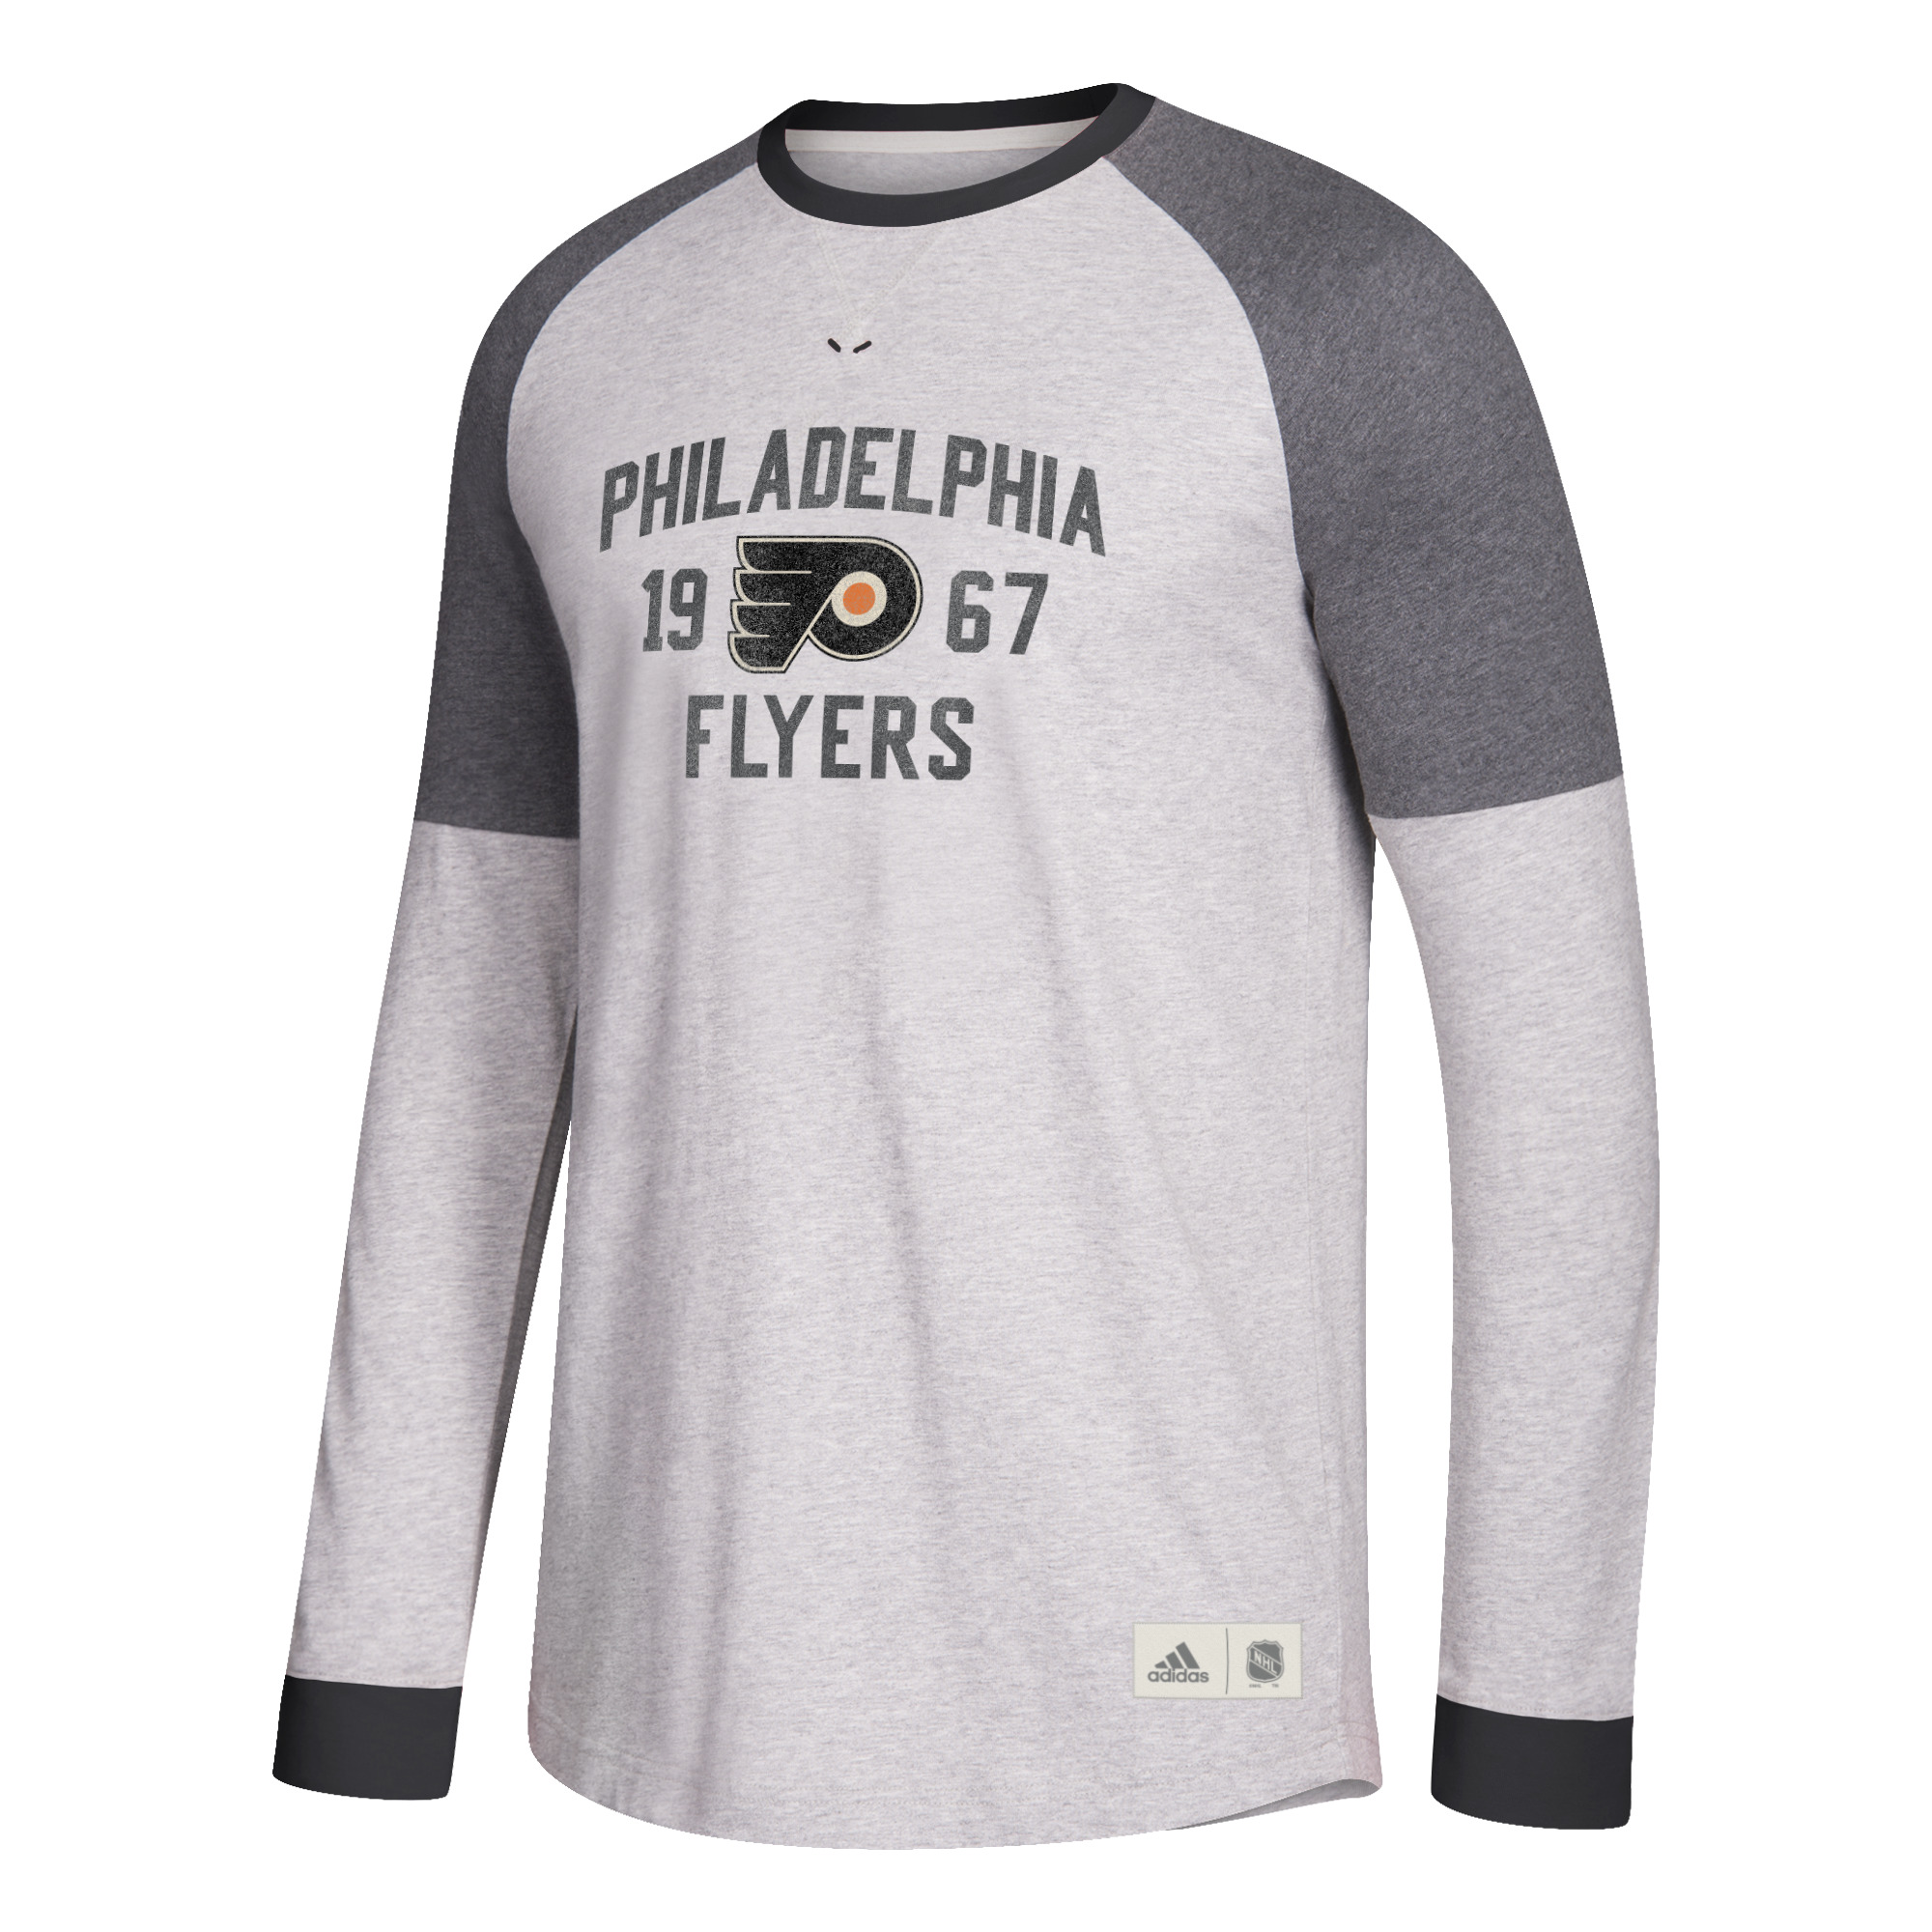 514245fe2 Philadelphia Flyers Men s Authentic Training Tee by Adidas - Wells Fargo  Center - Official Online Store